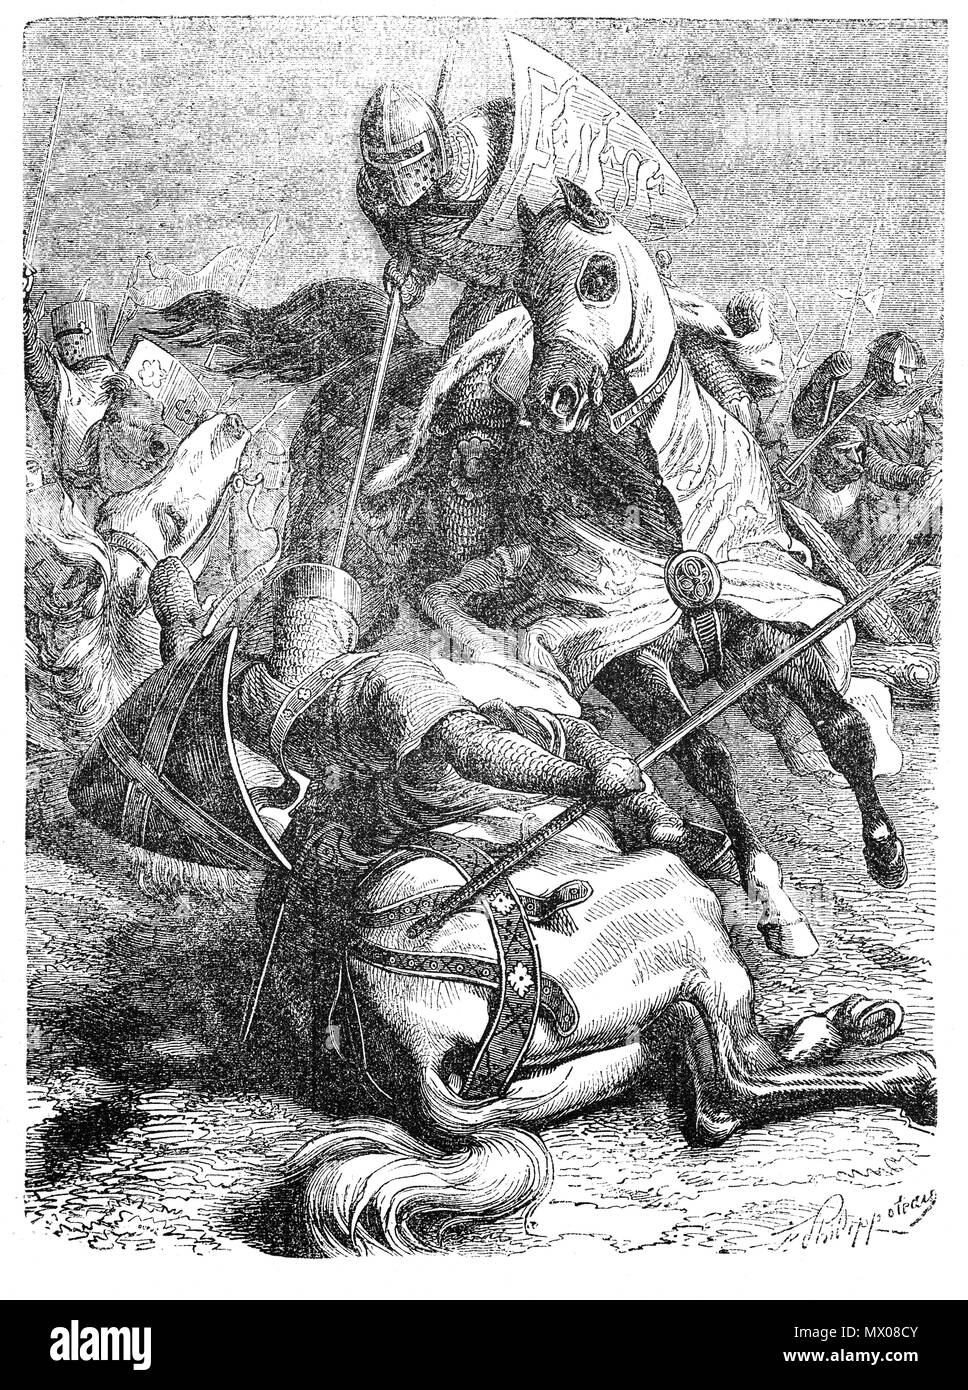 The Battle of Evesham on the 4 August 1265, was one of the two main battles of the Second Barons' War. It marked the defeat of Simon de Montfort, Earl of Leicester, and the rebellious barons by the future King Edward I, who led the forces of his father, King Henry III. It took place on 4 August 1265, near the town of Evesham, Worcestershire. During the battle Prince Edward entered into combat with Baron Adam Gourdon. The latter was wounded, thrown from his horse and taken prisoner. Edward procured Gourdon's pardon who went on to beferiend and serve the prince. - Stock Image